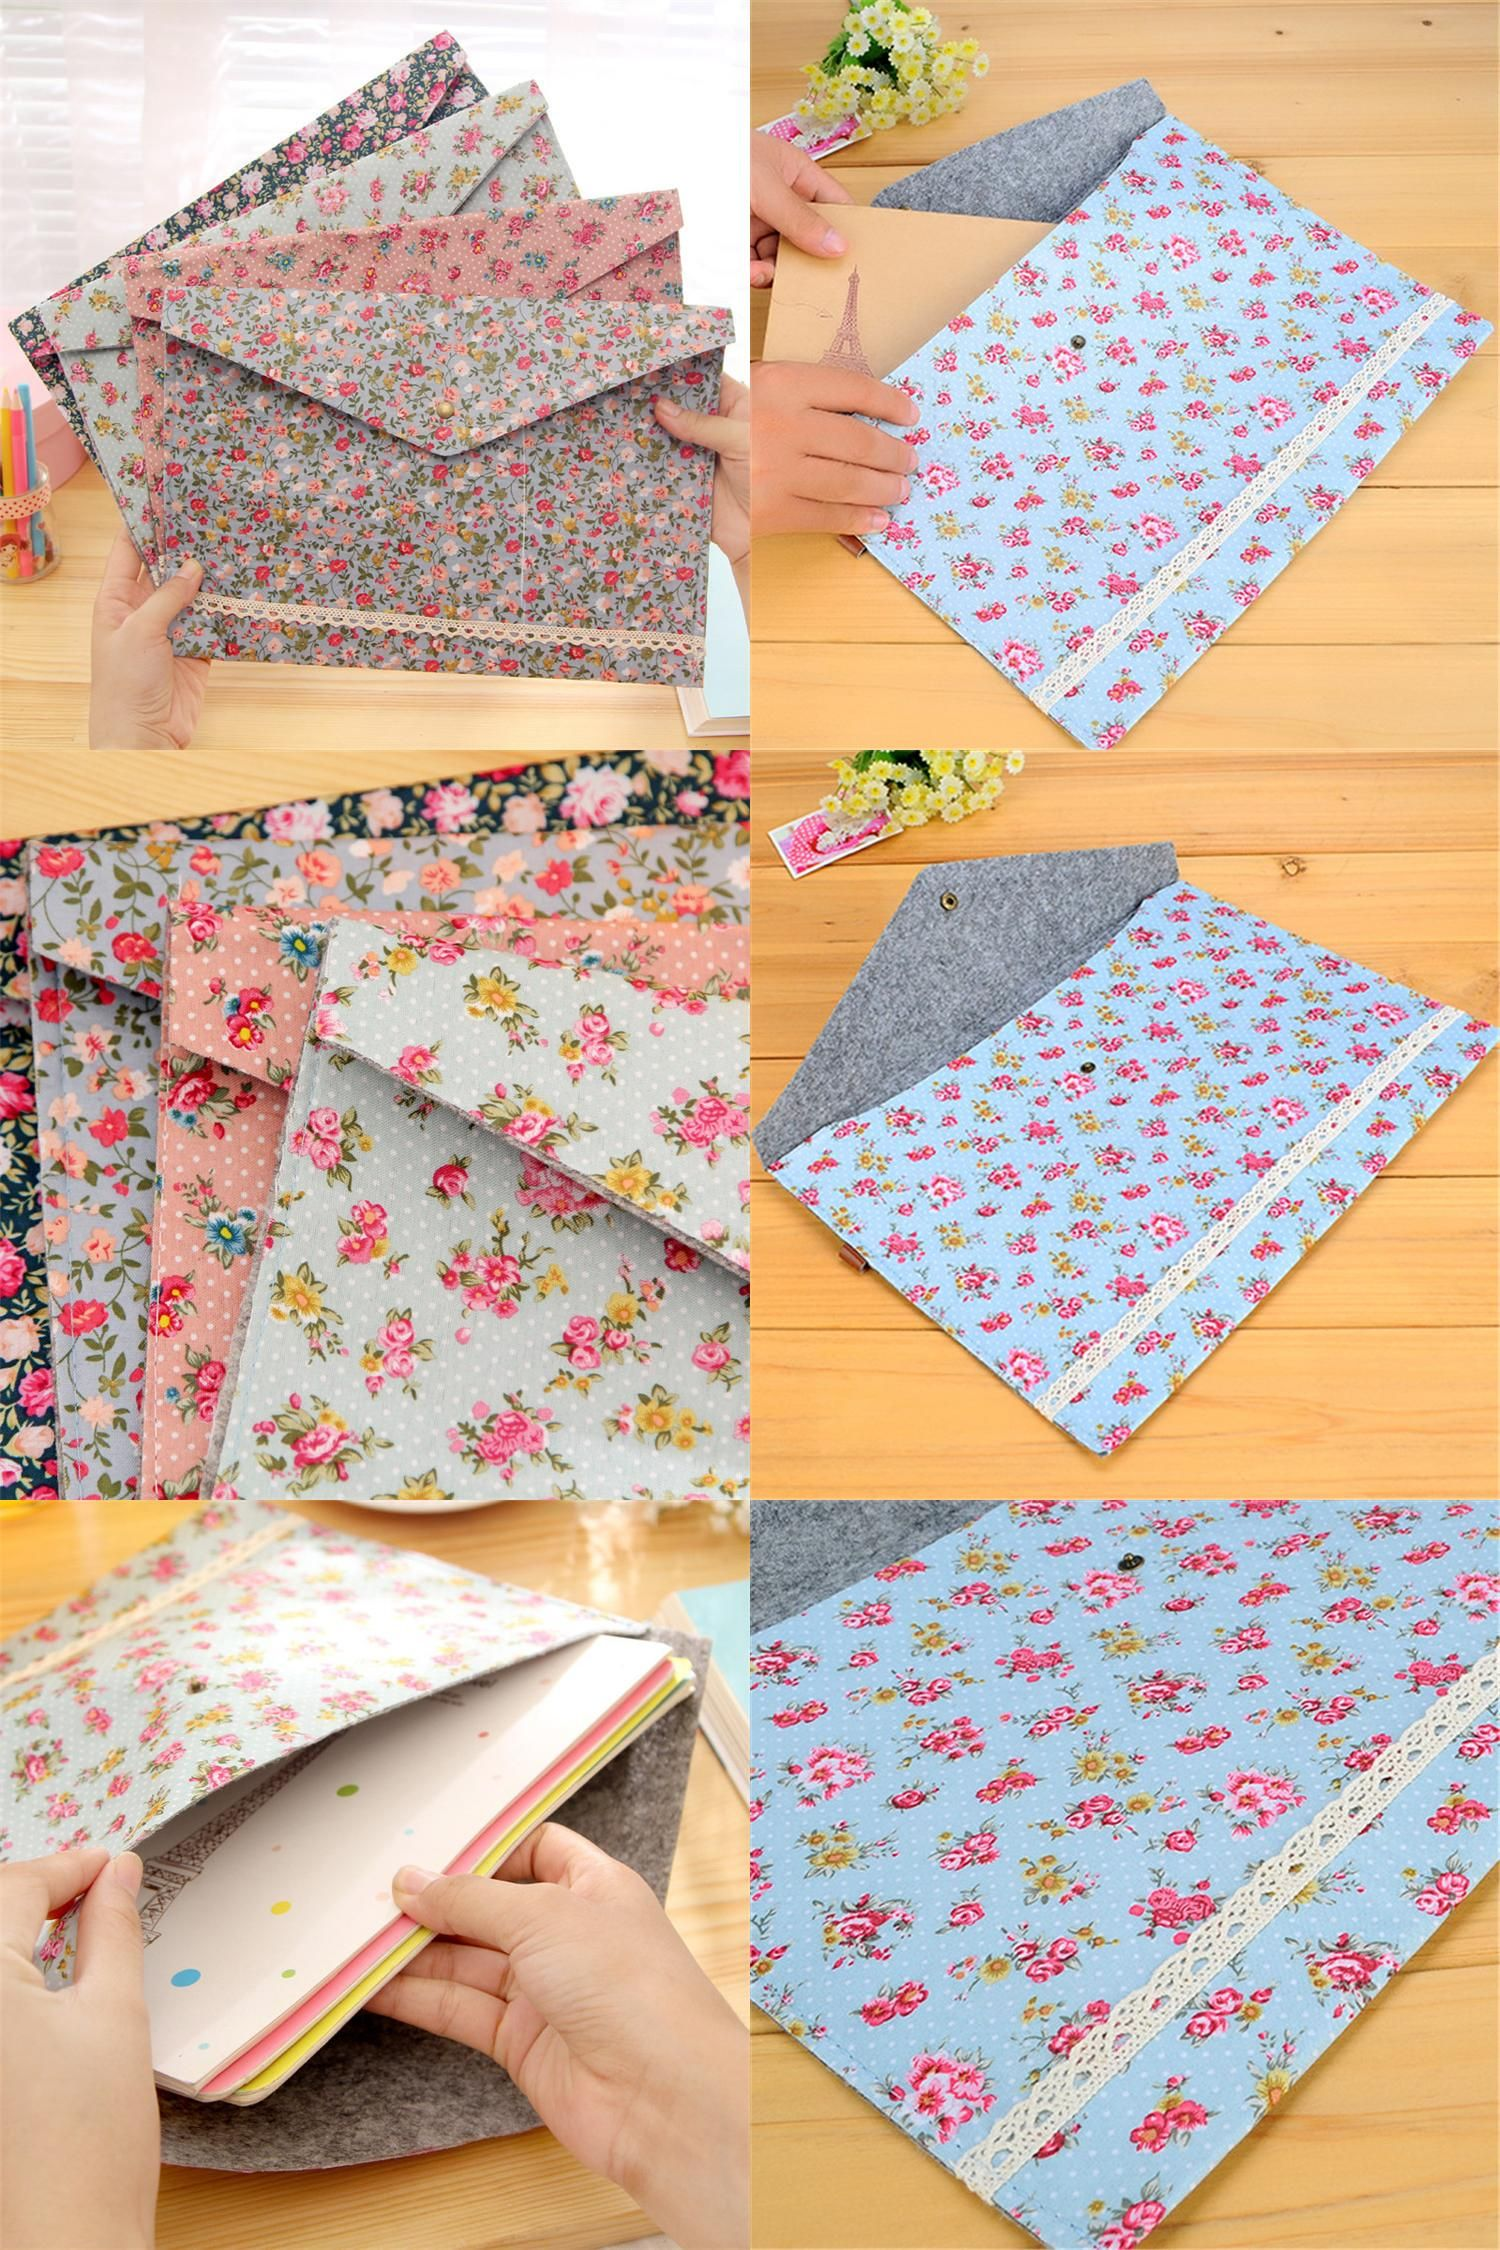 [Visit to Buy] 2017 New Vintage Small Flower Fabric A4 Document File Folder Floral Document Bag Novelty For School office Stationary HE119 #Advertisement